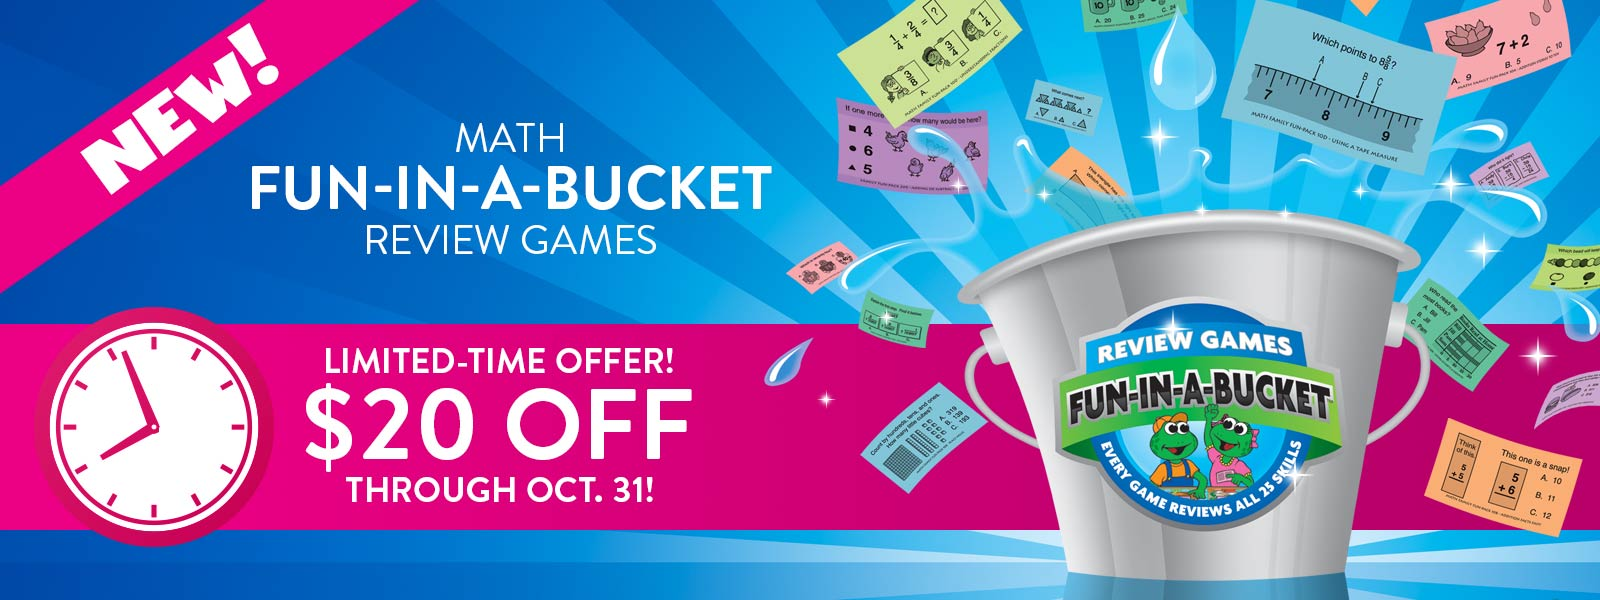 Fun-In-A-Bucket Special